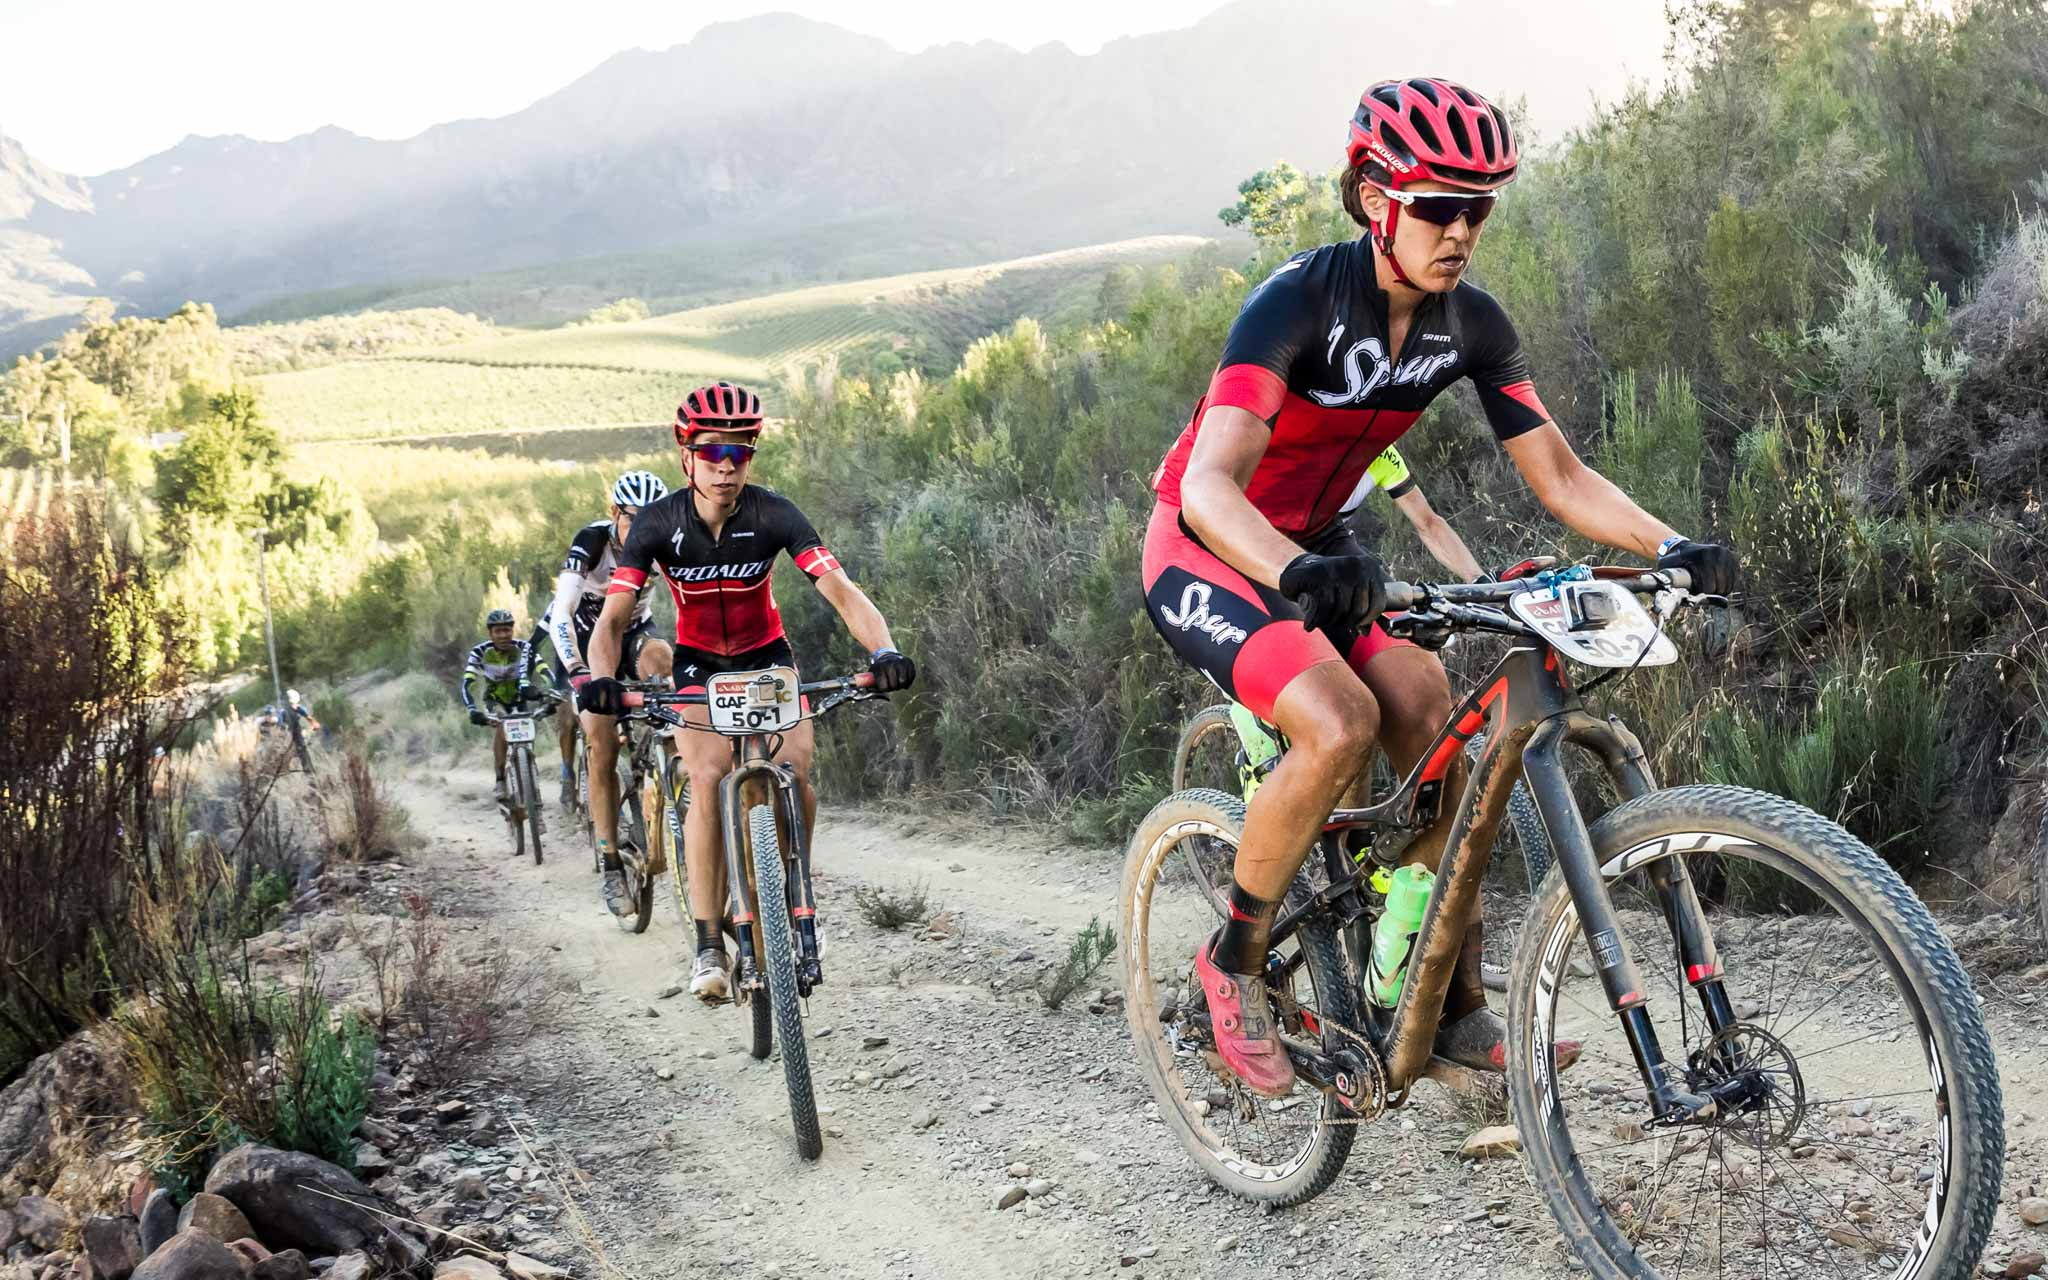 Annika Langvad and Ariane Kleinhans during stage 1 of the 2016 Absa Cape Epic Mountain Bike stage race held from Saronsberg Wine Estate in Tulbagh, South Africa on the 14th March 2016 Photo by Dominic Barnardt/Cape Epic/SPORTZPICS PLEASE ENSURE THE APPROPRIATE CREDIT IS GIVEN TO THE PHOTOGRAPHER AND SPORTZPICS ALONG WITH THE ABSA CAPE EPIC ace2016